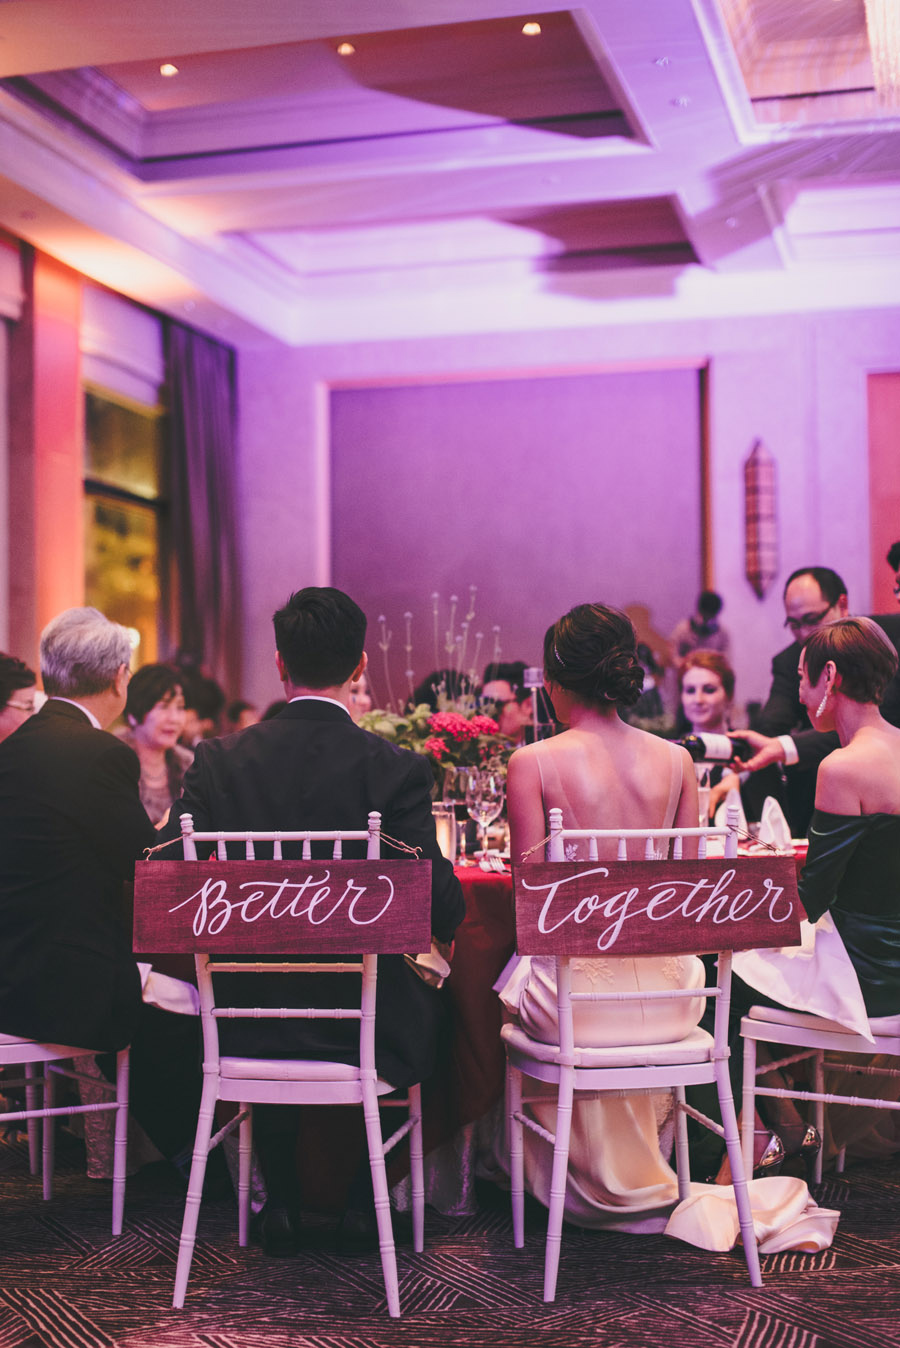 """Better Together"" lettering on wood for the bride and groom // calligraphy by Chavelli www.chavelli.com // photo by Justin Lim"